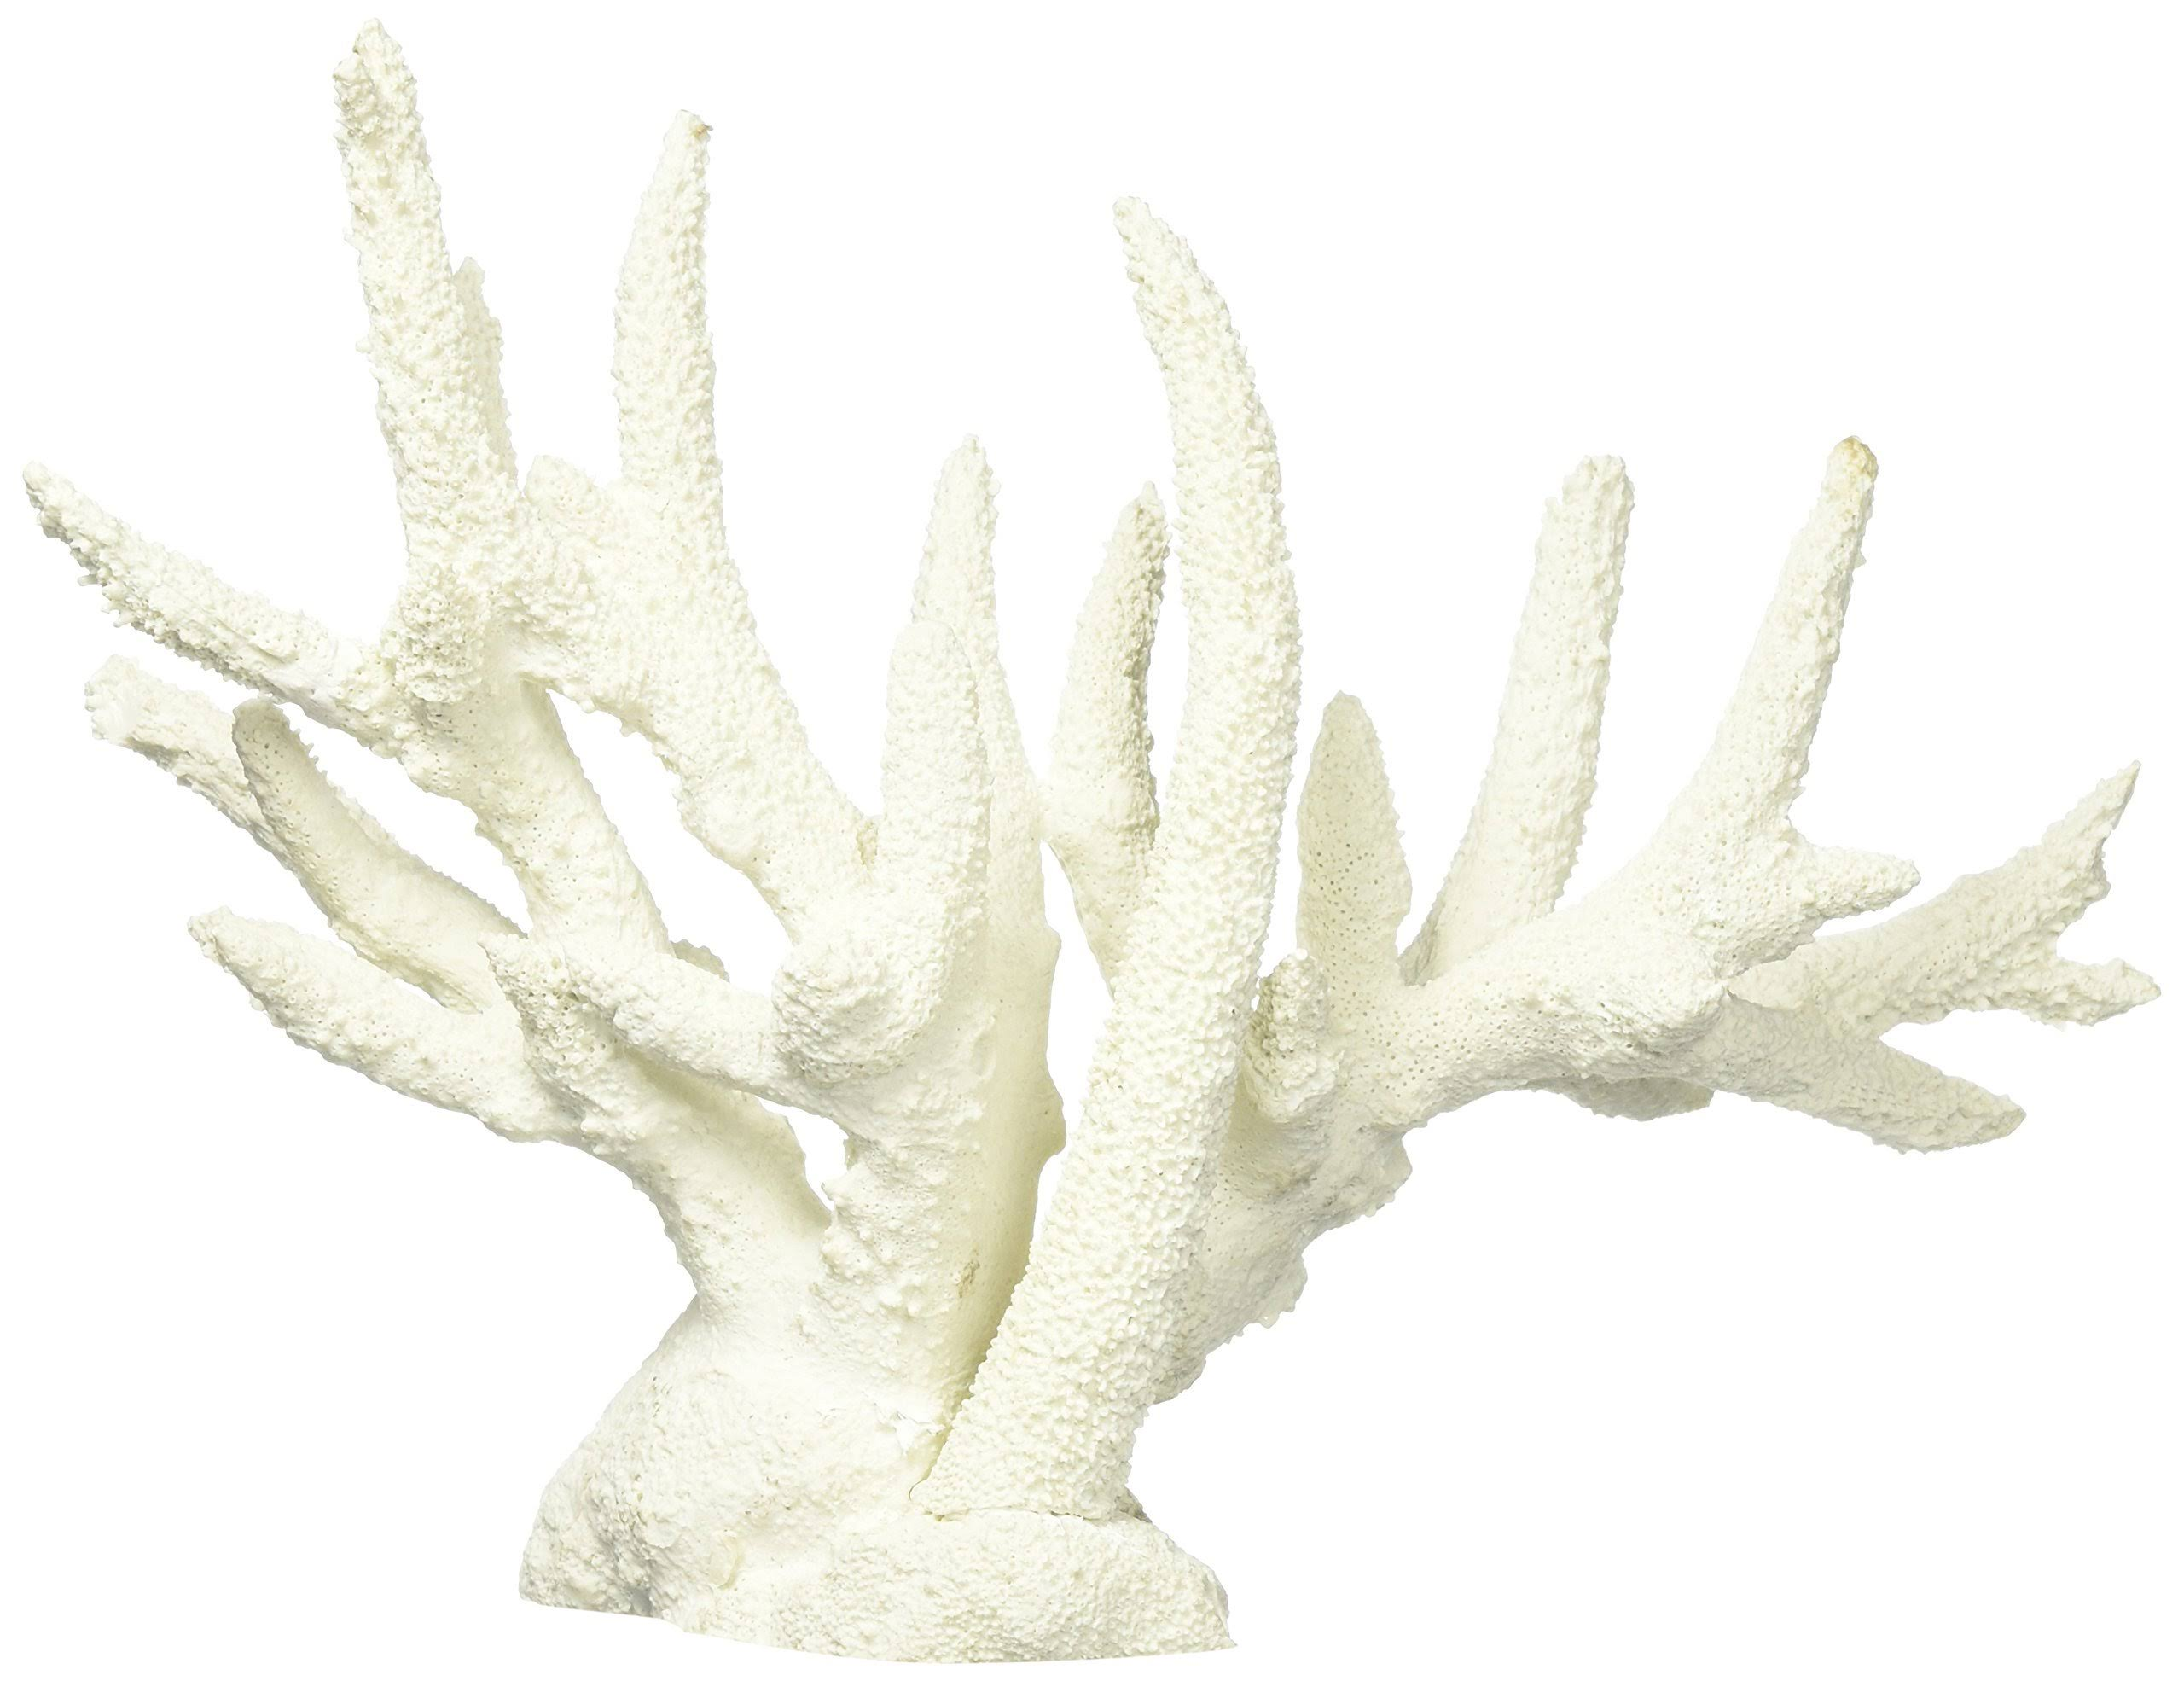 "Deep Blue Professional ADB80092 Staghorn Coral Aquarium Decor - 13.5"" x 4.5"" x 9.5"""